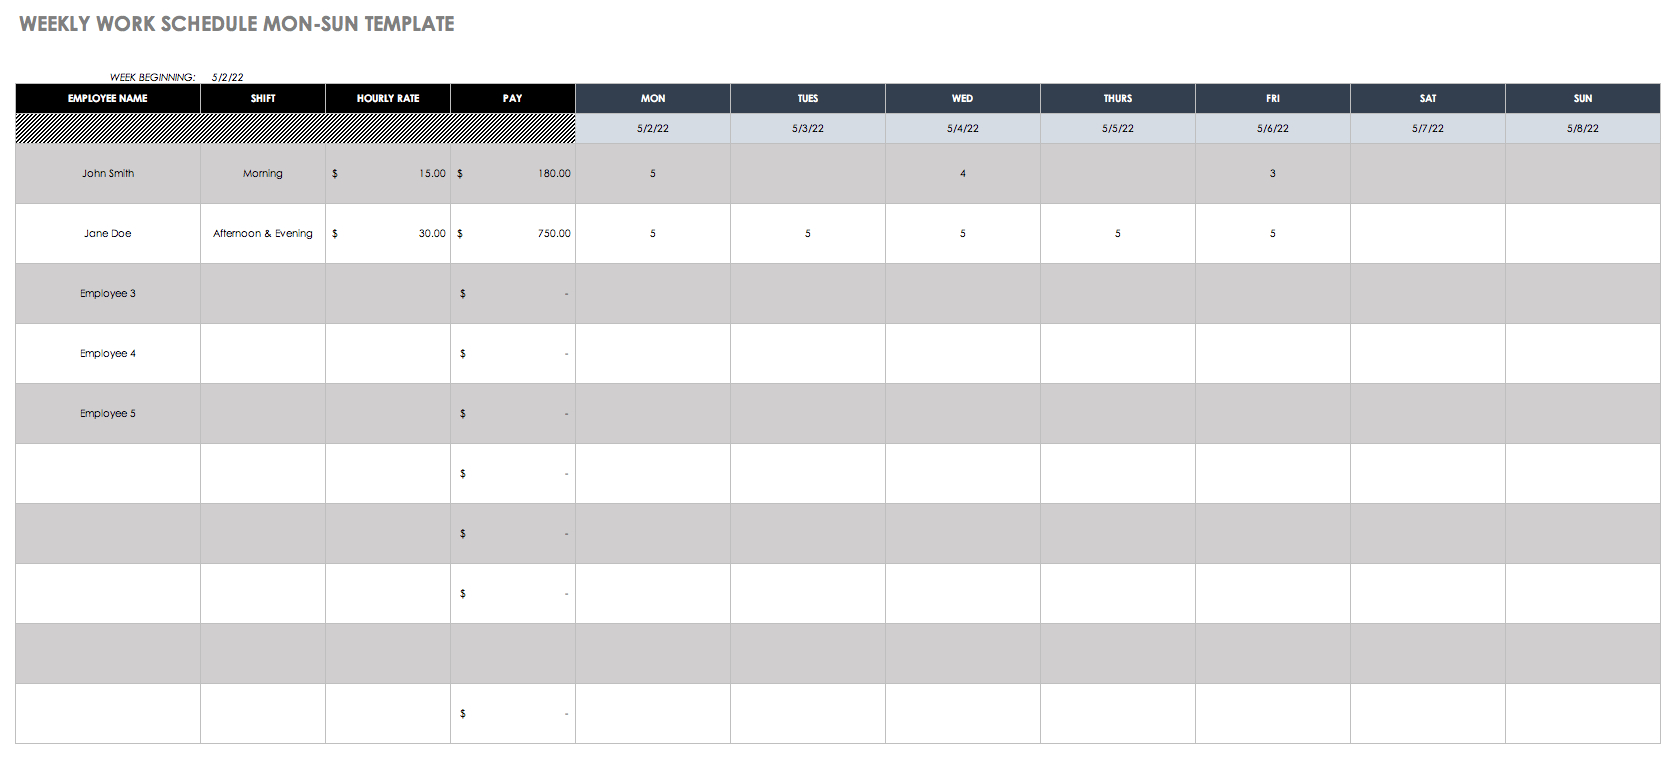 Free Work Schedule Templates For Word And Excel - Free Printable Work Schedule Maker